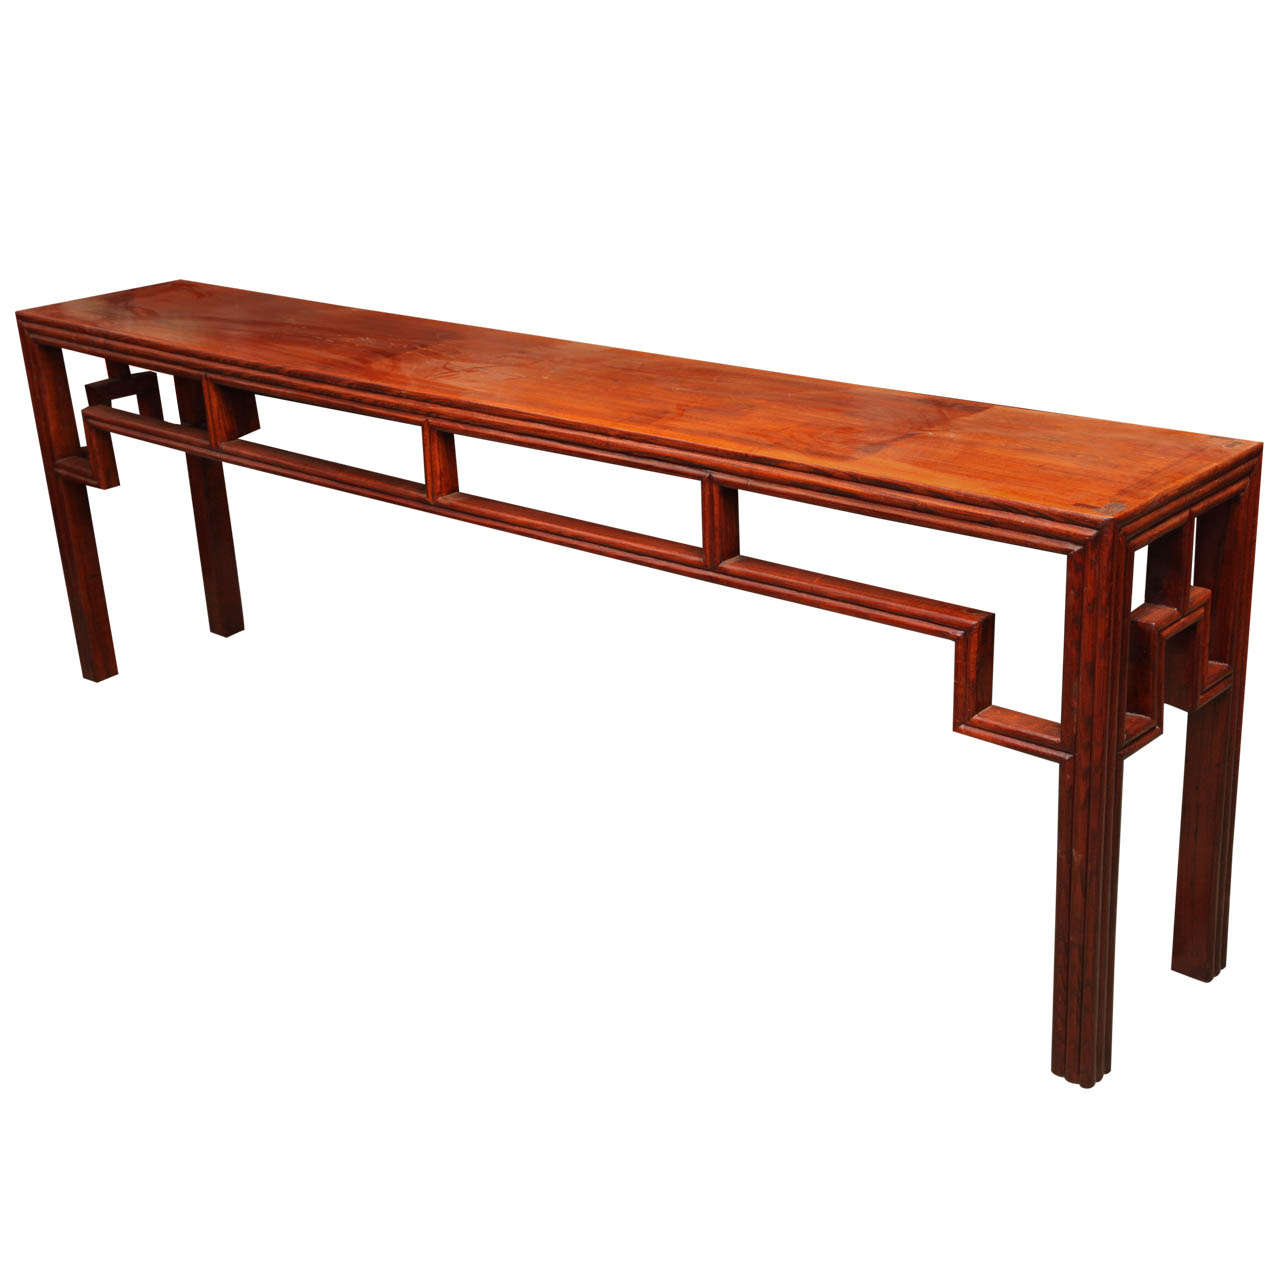 Antique chinese geometrical design long elmwood console table antique chinese geometrical design long elmwood console table early 1900s 1 geotapseo Gallery